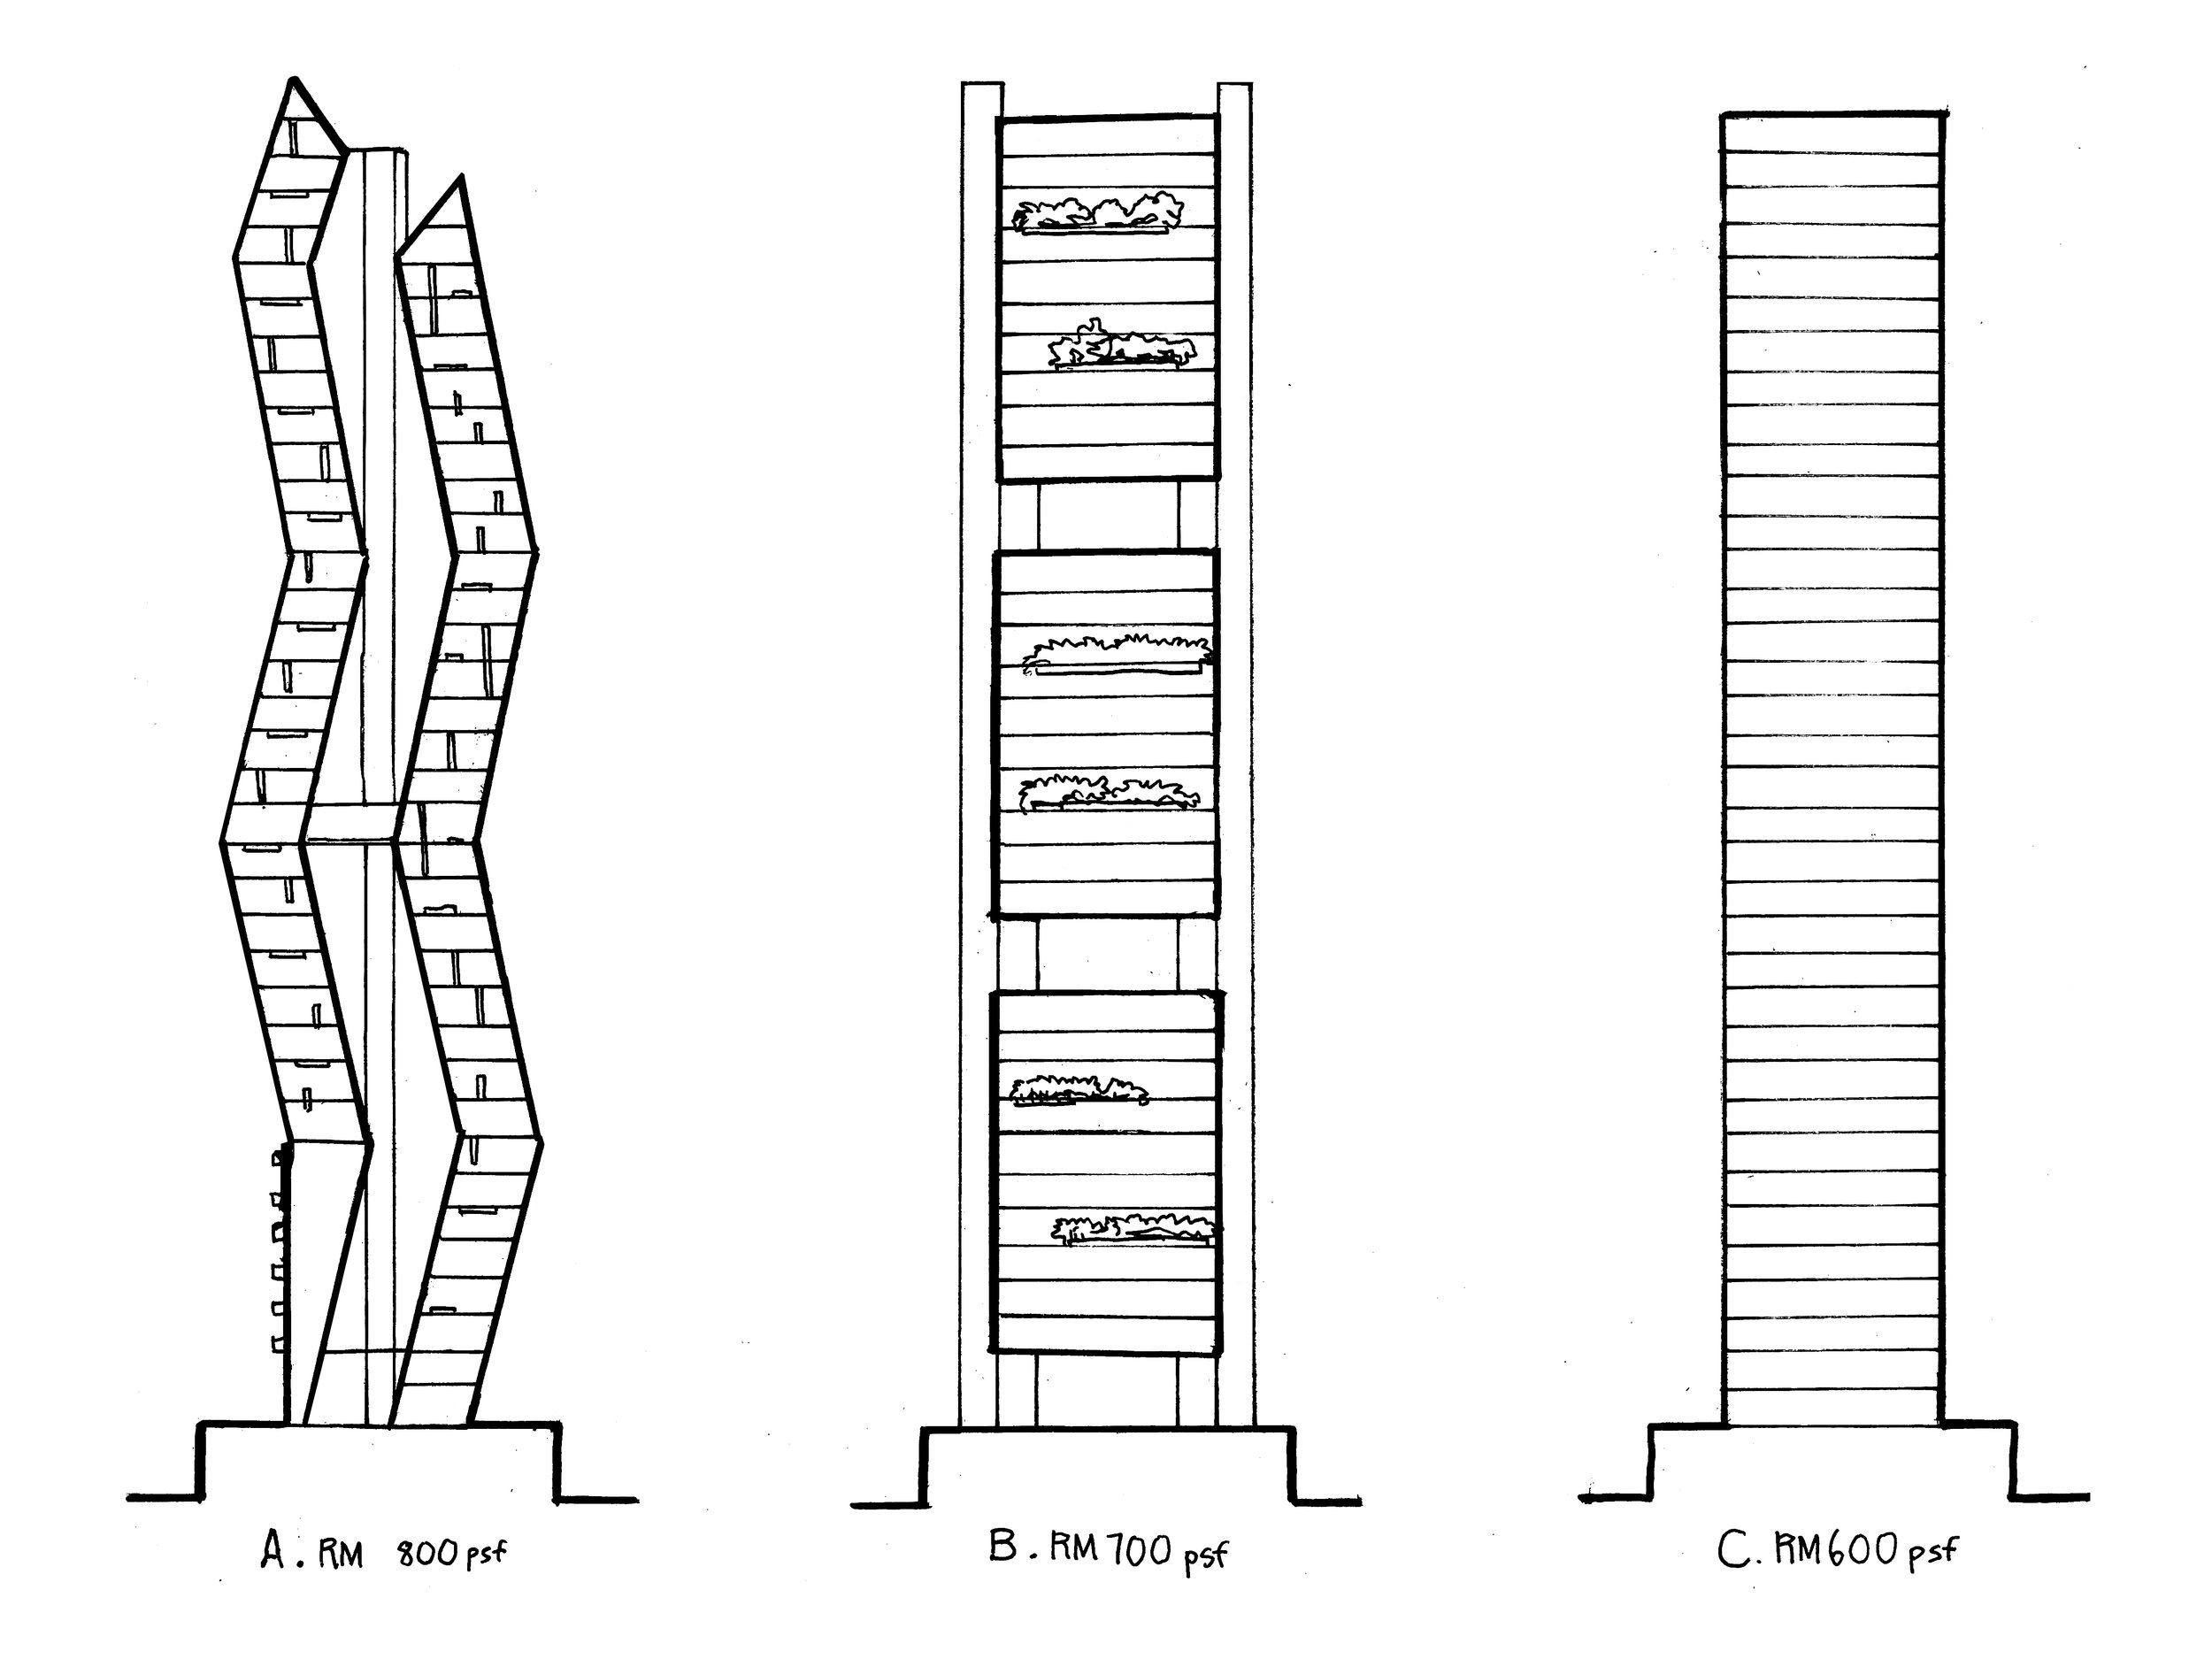 Preference-based Design 2 - Facade